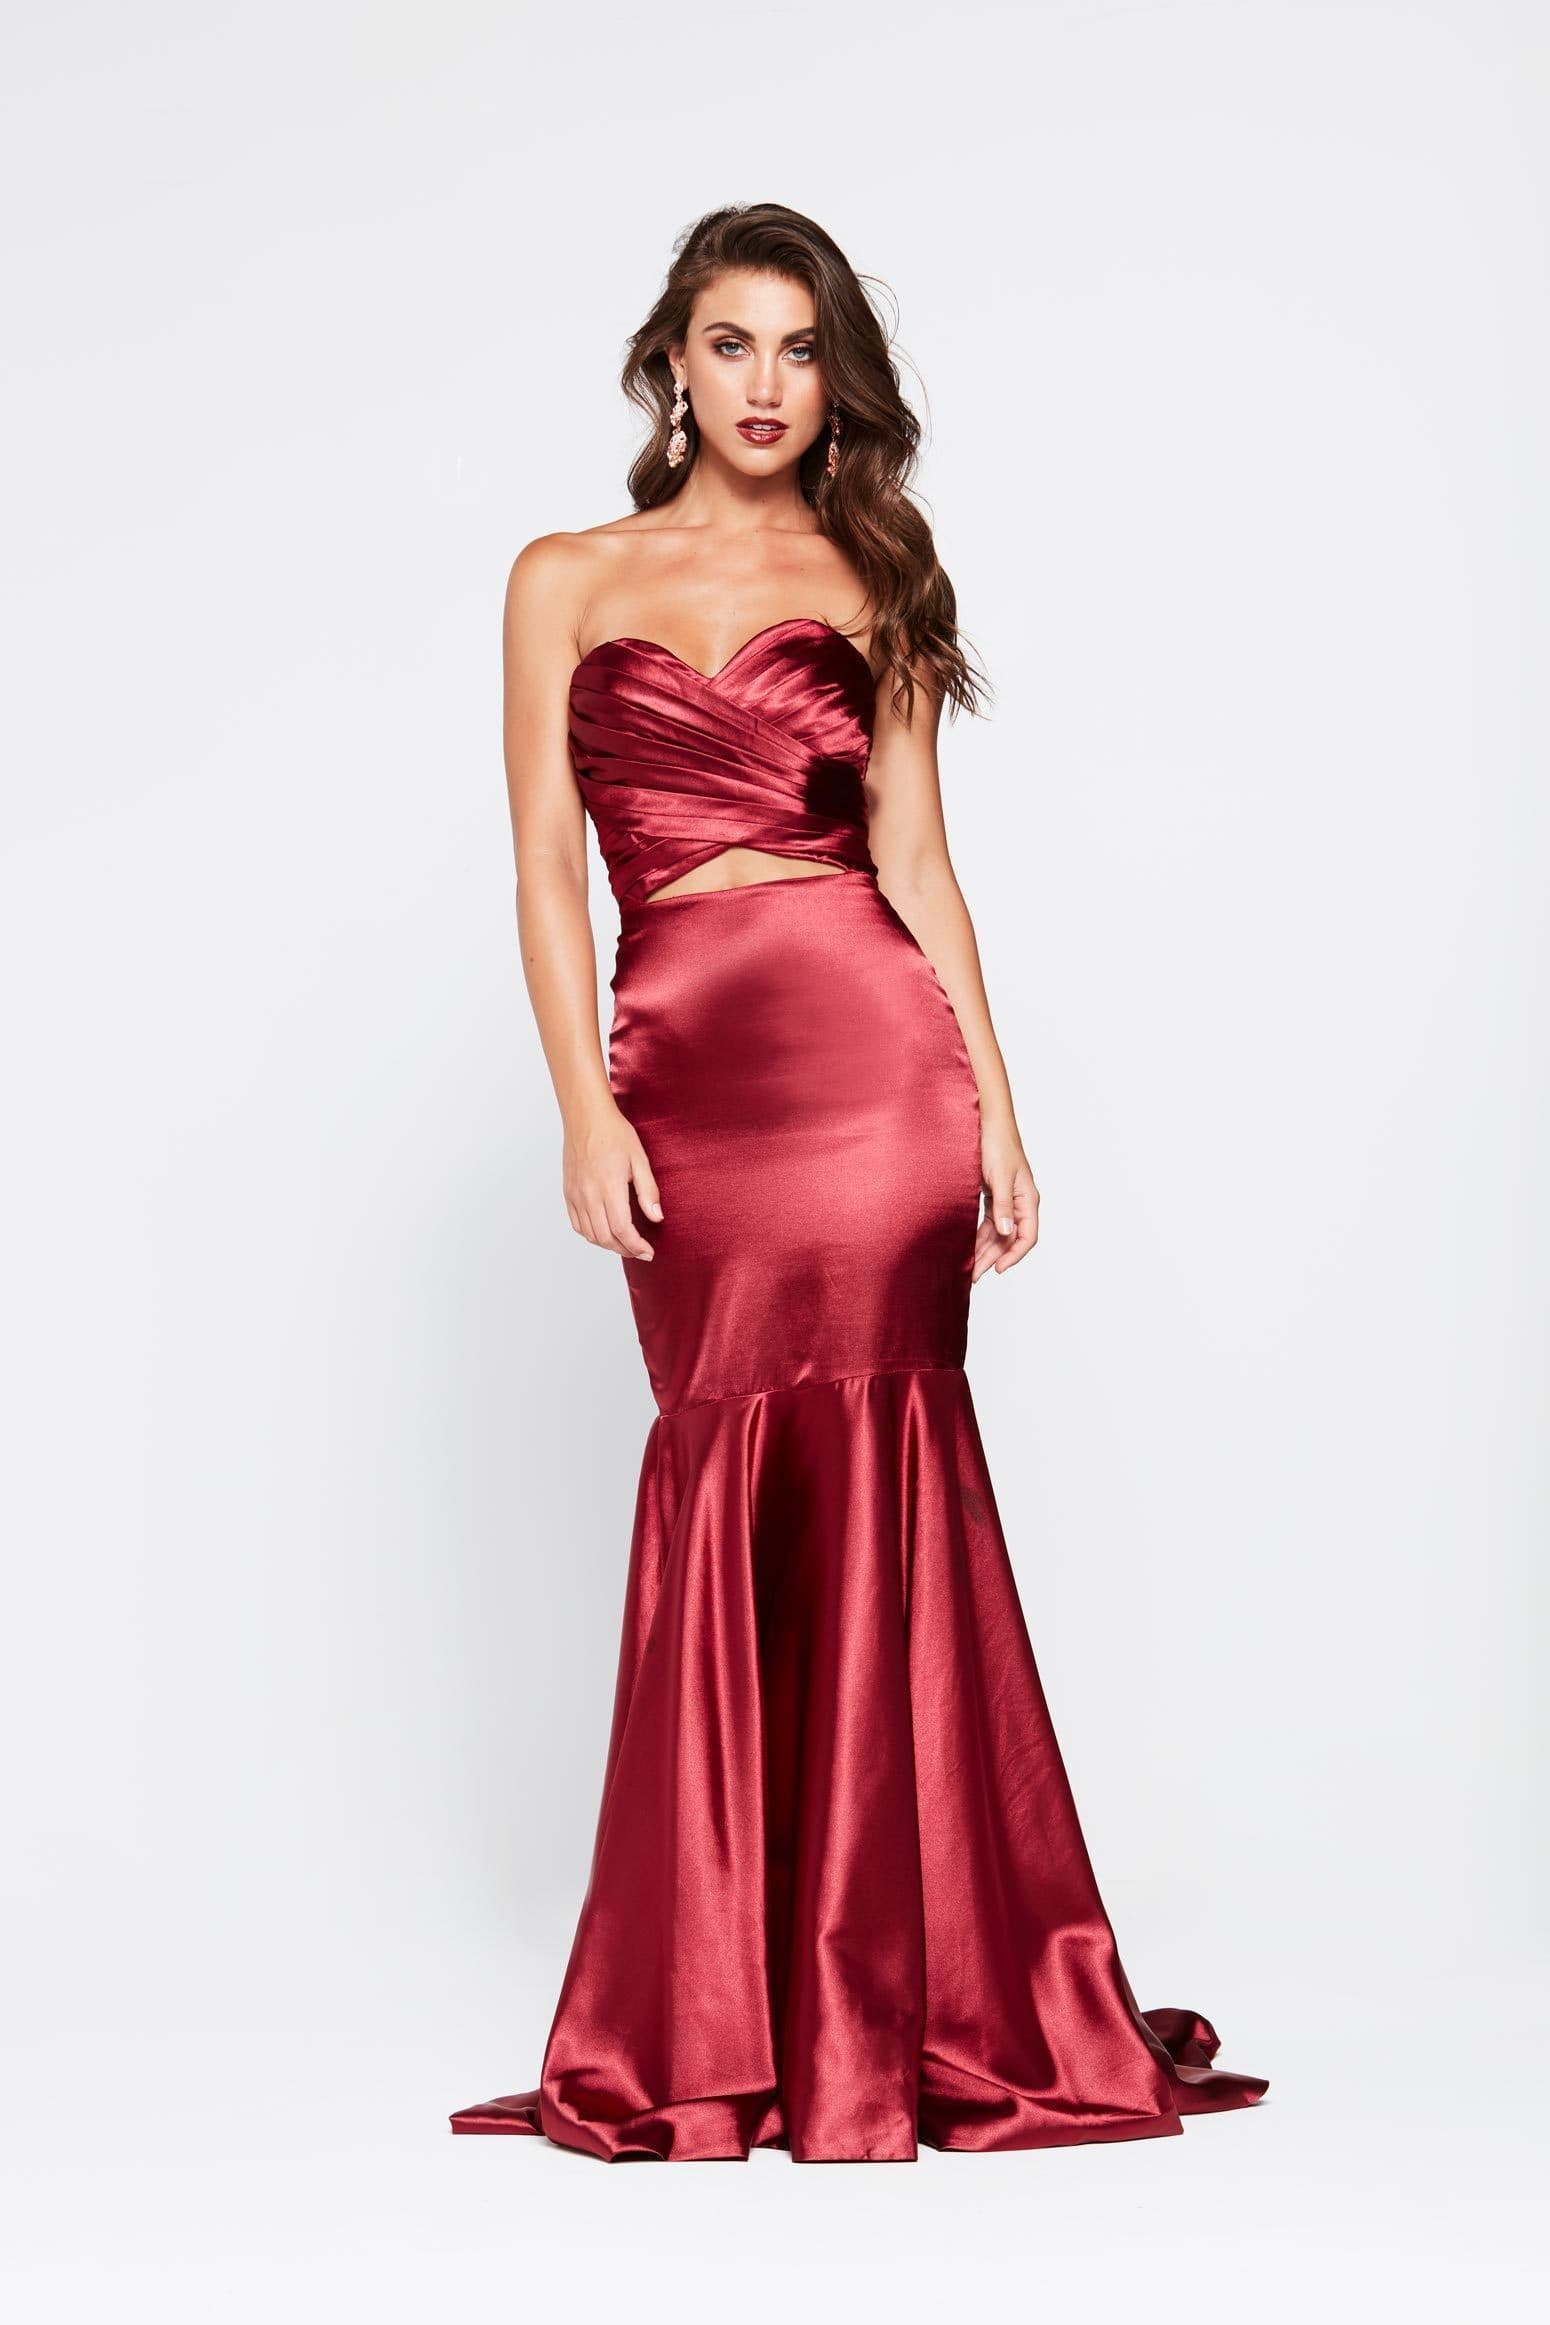 0ce1c4503a12 A N Akira - Deep Red Satin Dress with Pleated Bodice and Mermaid Train ...